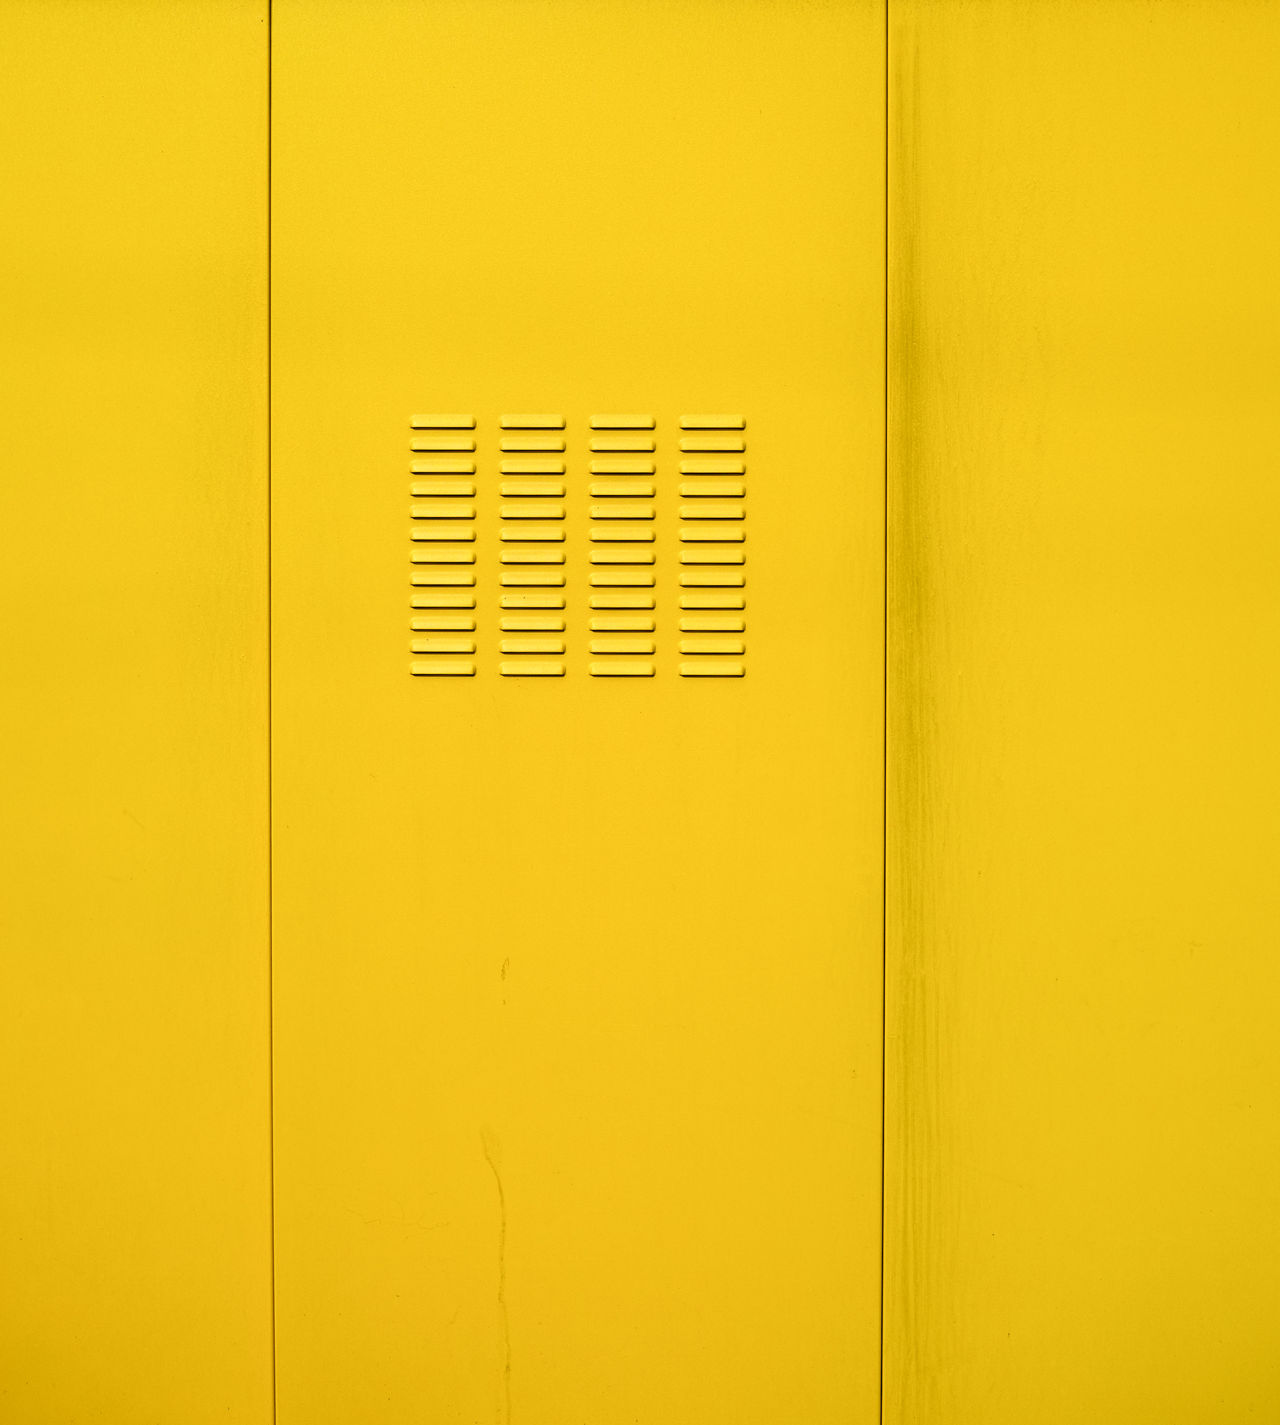 Quittengelb Abstract Door Gelb Geometry Lüftung Metal Q Quittengelb Tür Venting Slot Yellow